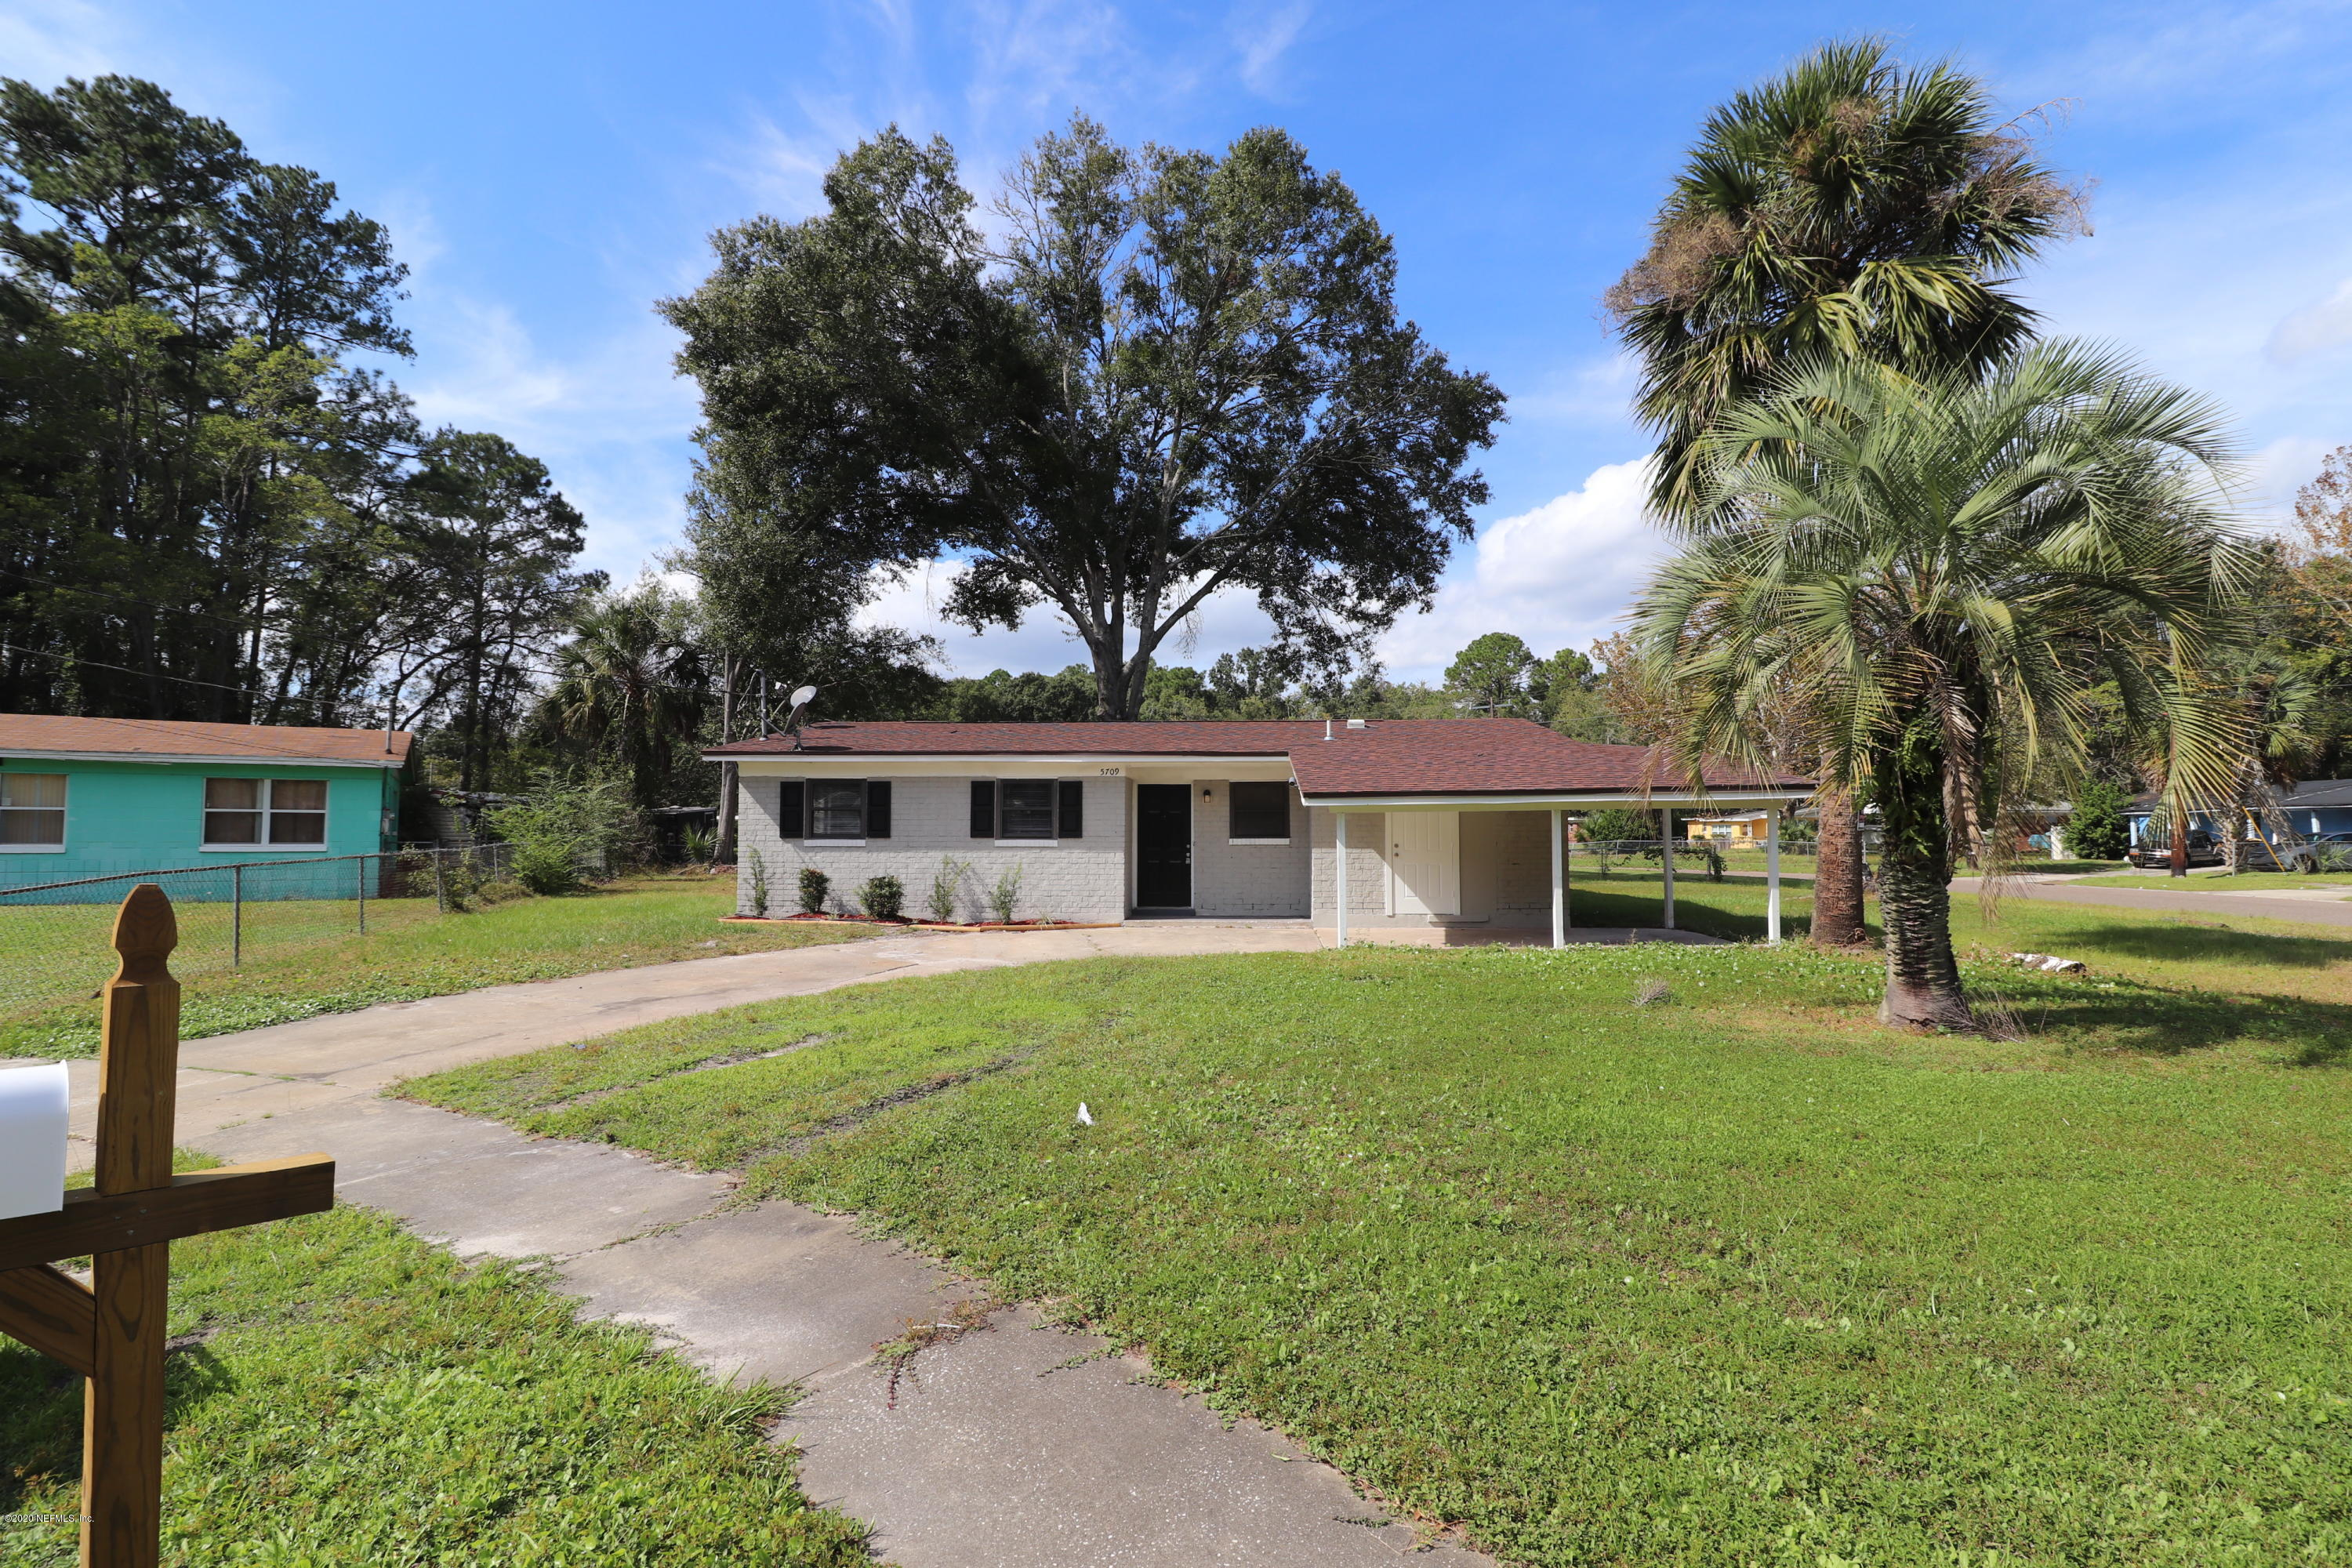 5709 BOQUERON, JACKSONVILLE, FLORIDA 32219, 3 Bedrooms Bedrooms, ,2 BathroomsBathrooms,Residential,For sale,BOQUERON,1071653